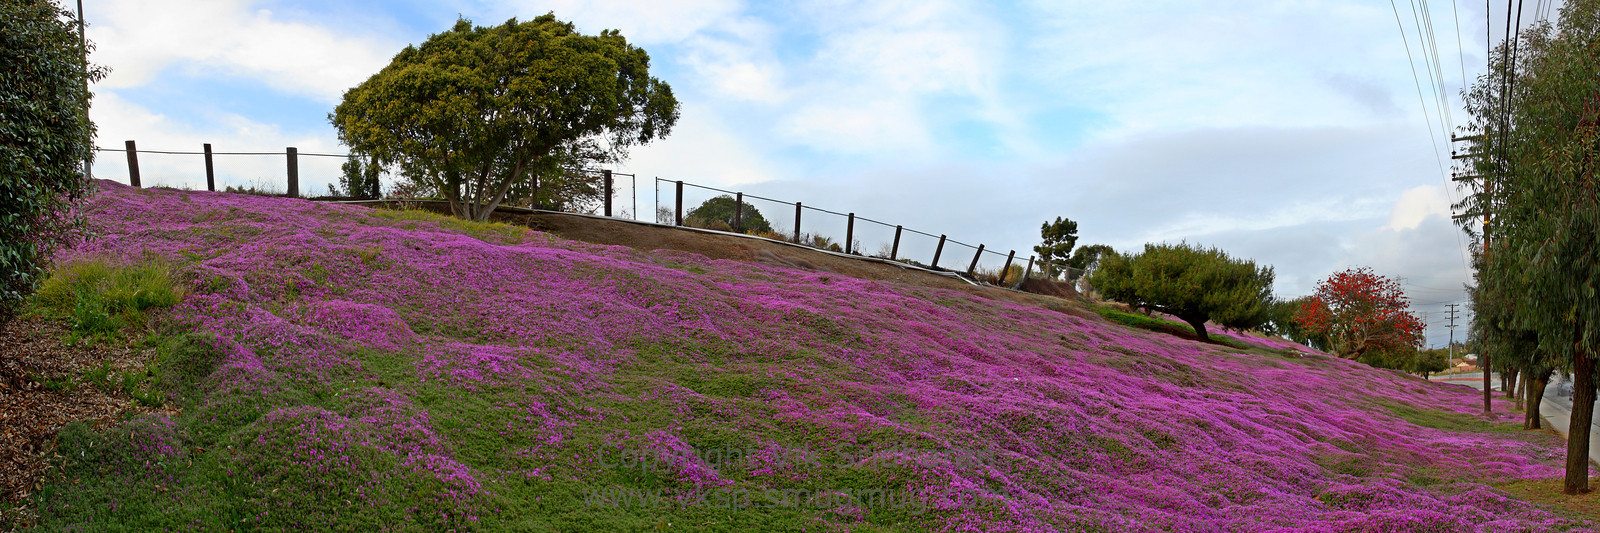 http://www.vksphoto.com/Landscapes/California/Panoramas/i-FMJVGw3/0/X3/Hillside-in-Bloom-X3.jpg